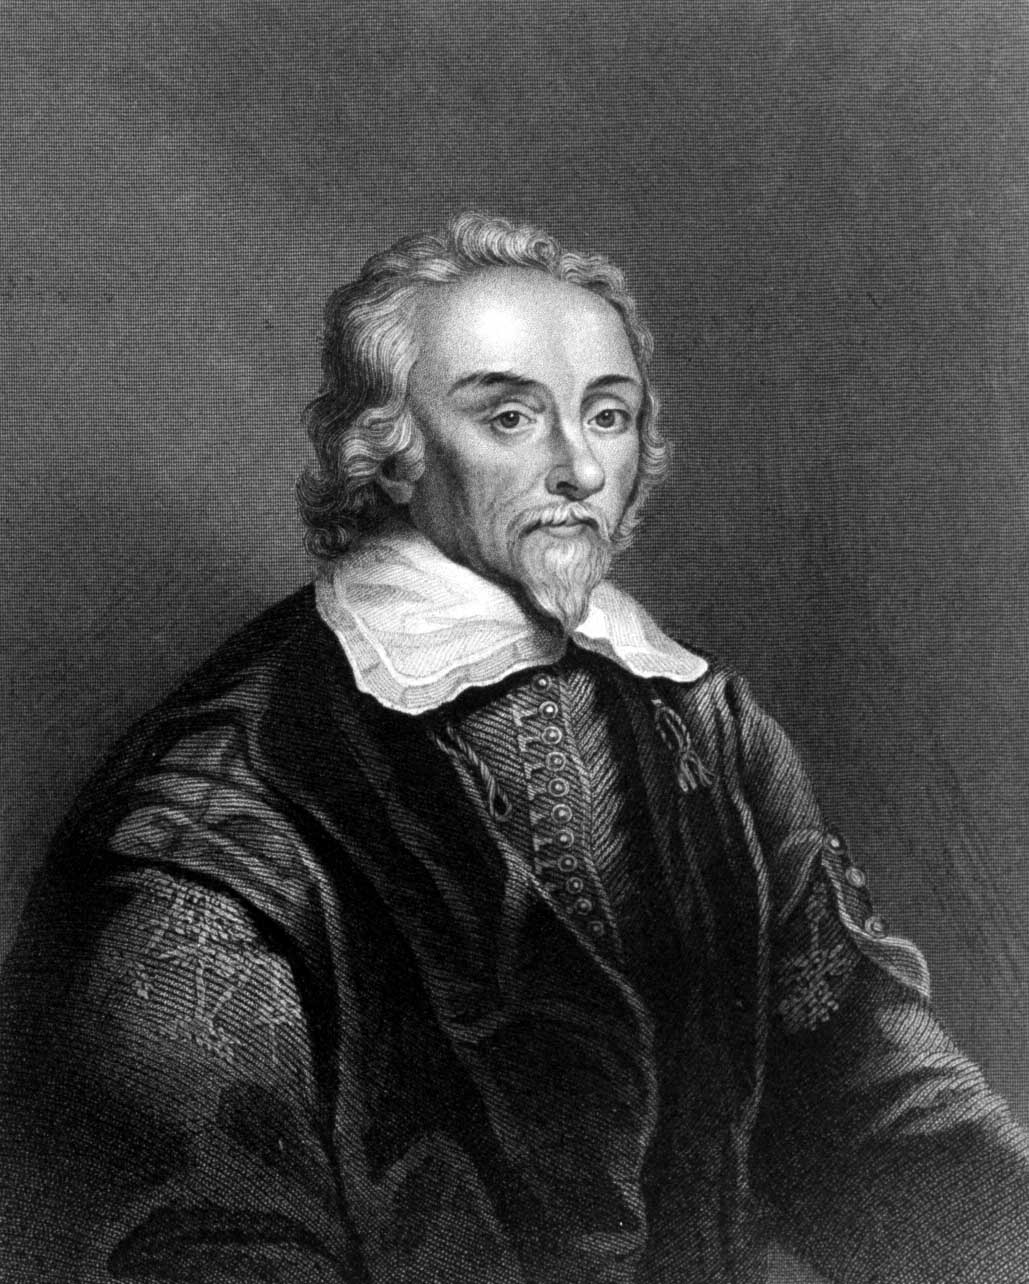 Engraving of English physician and anatomist William Harvey (1578-1657) who discovered the circulation of blood.  (Photo by Time Life Pictures/Mansell/The LIFE Picture Collection/Getty Images)